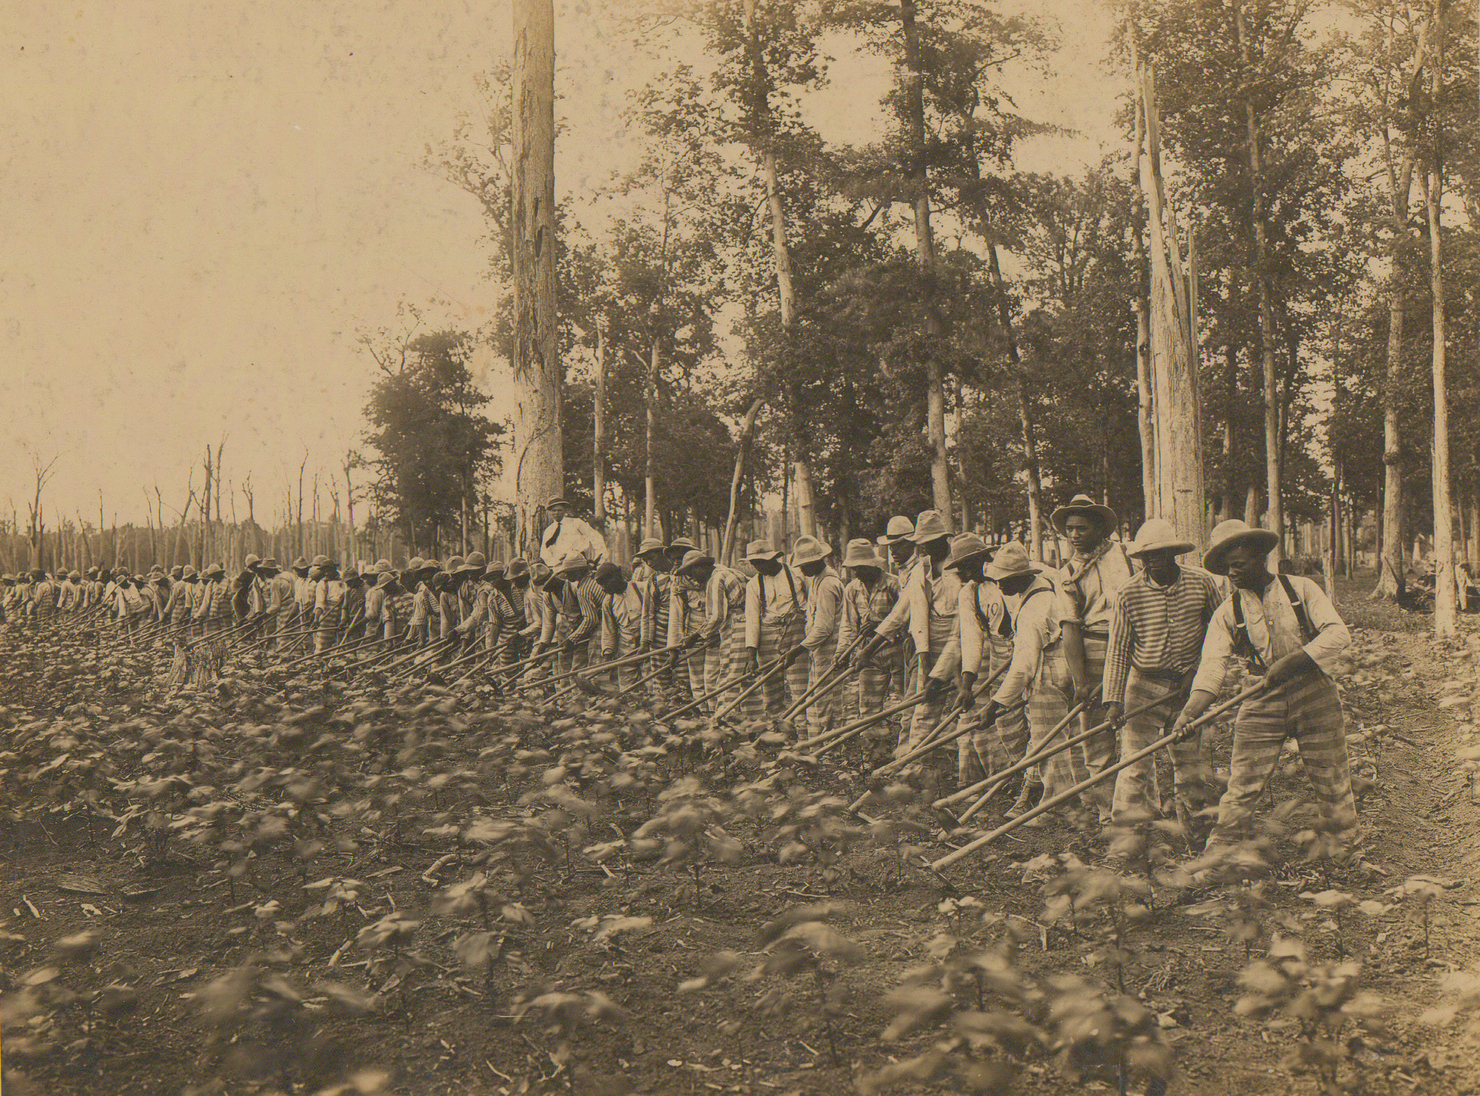 Prisoners farming cotton under the trusty system in Parchman Farm, Mississippi, 1911 - Cotton